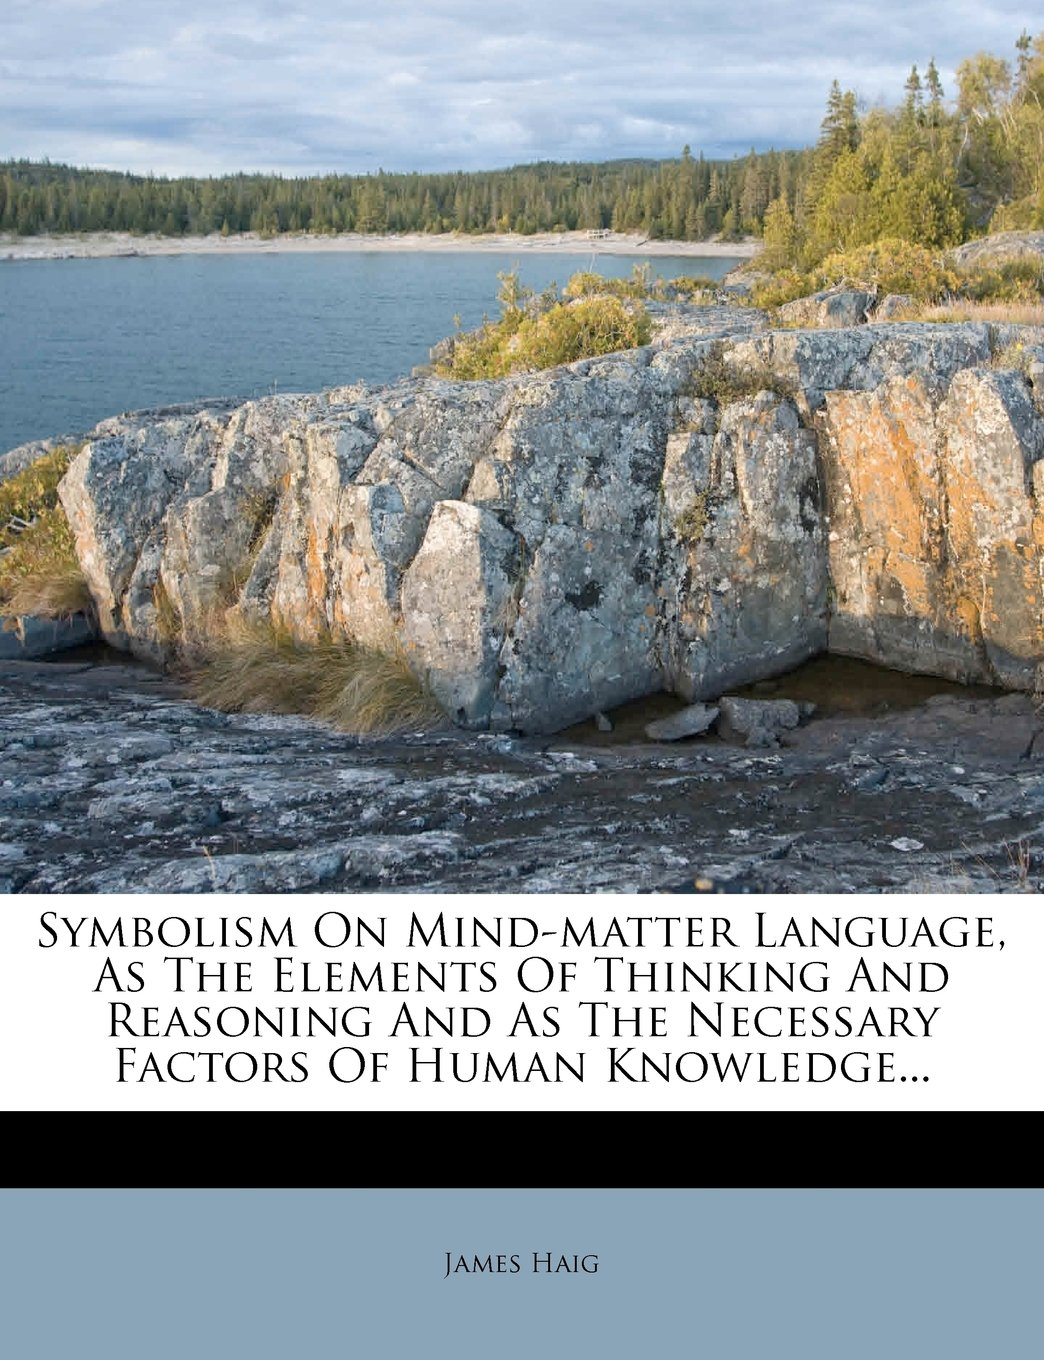 Symbolism On Mind-matter Language, As The Elements Of Thinking And Reasoning And As The Necessary Factors Of Human Knowledge... PDF